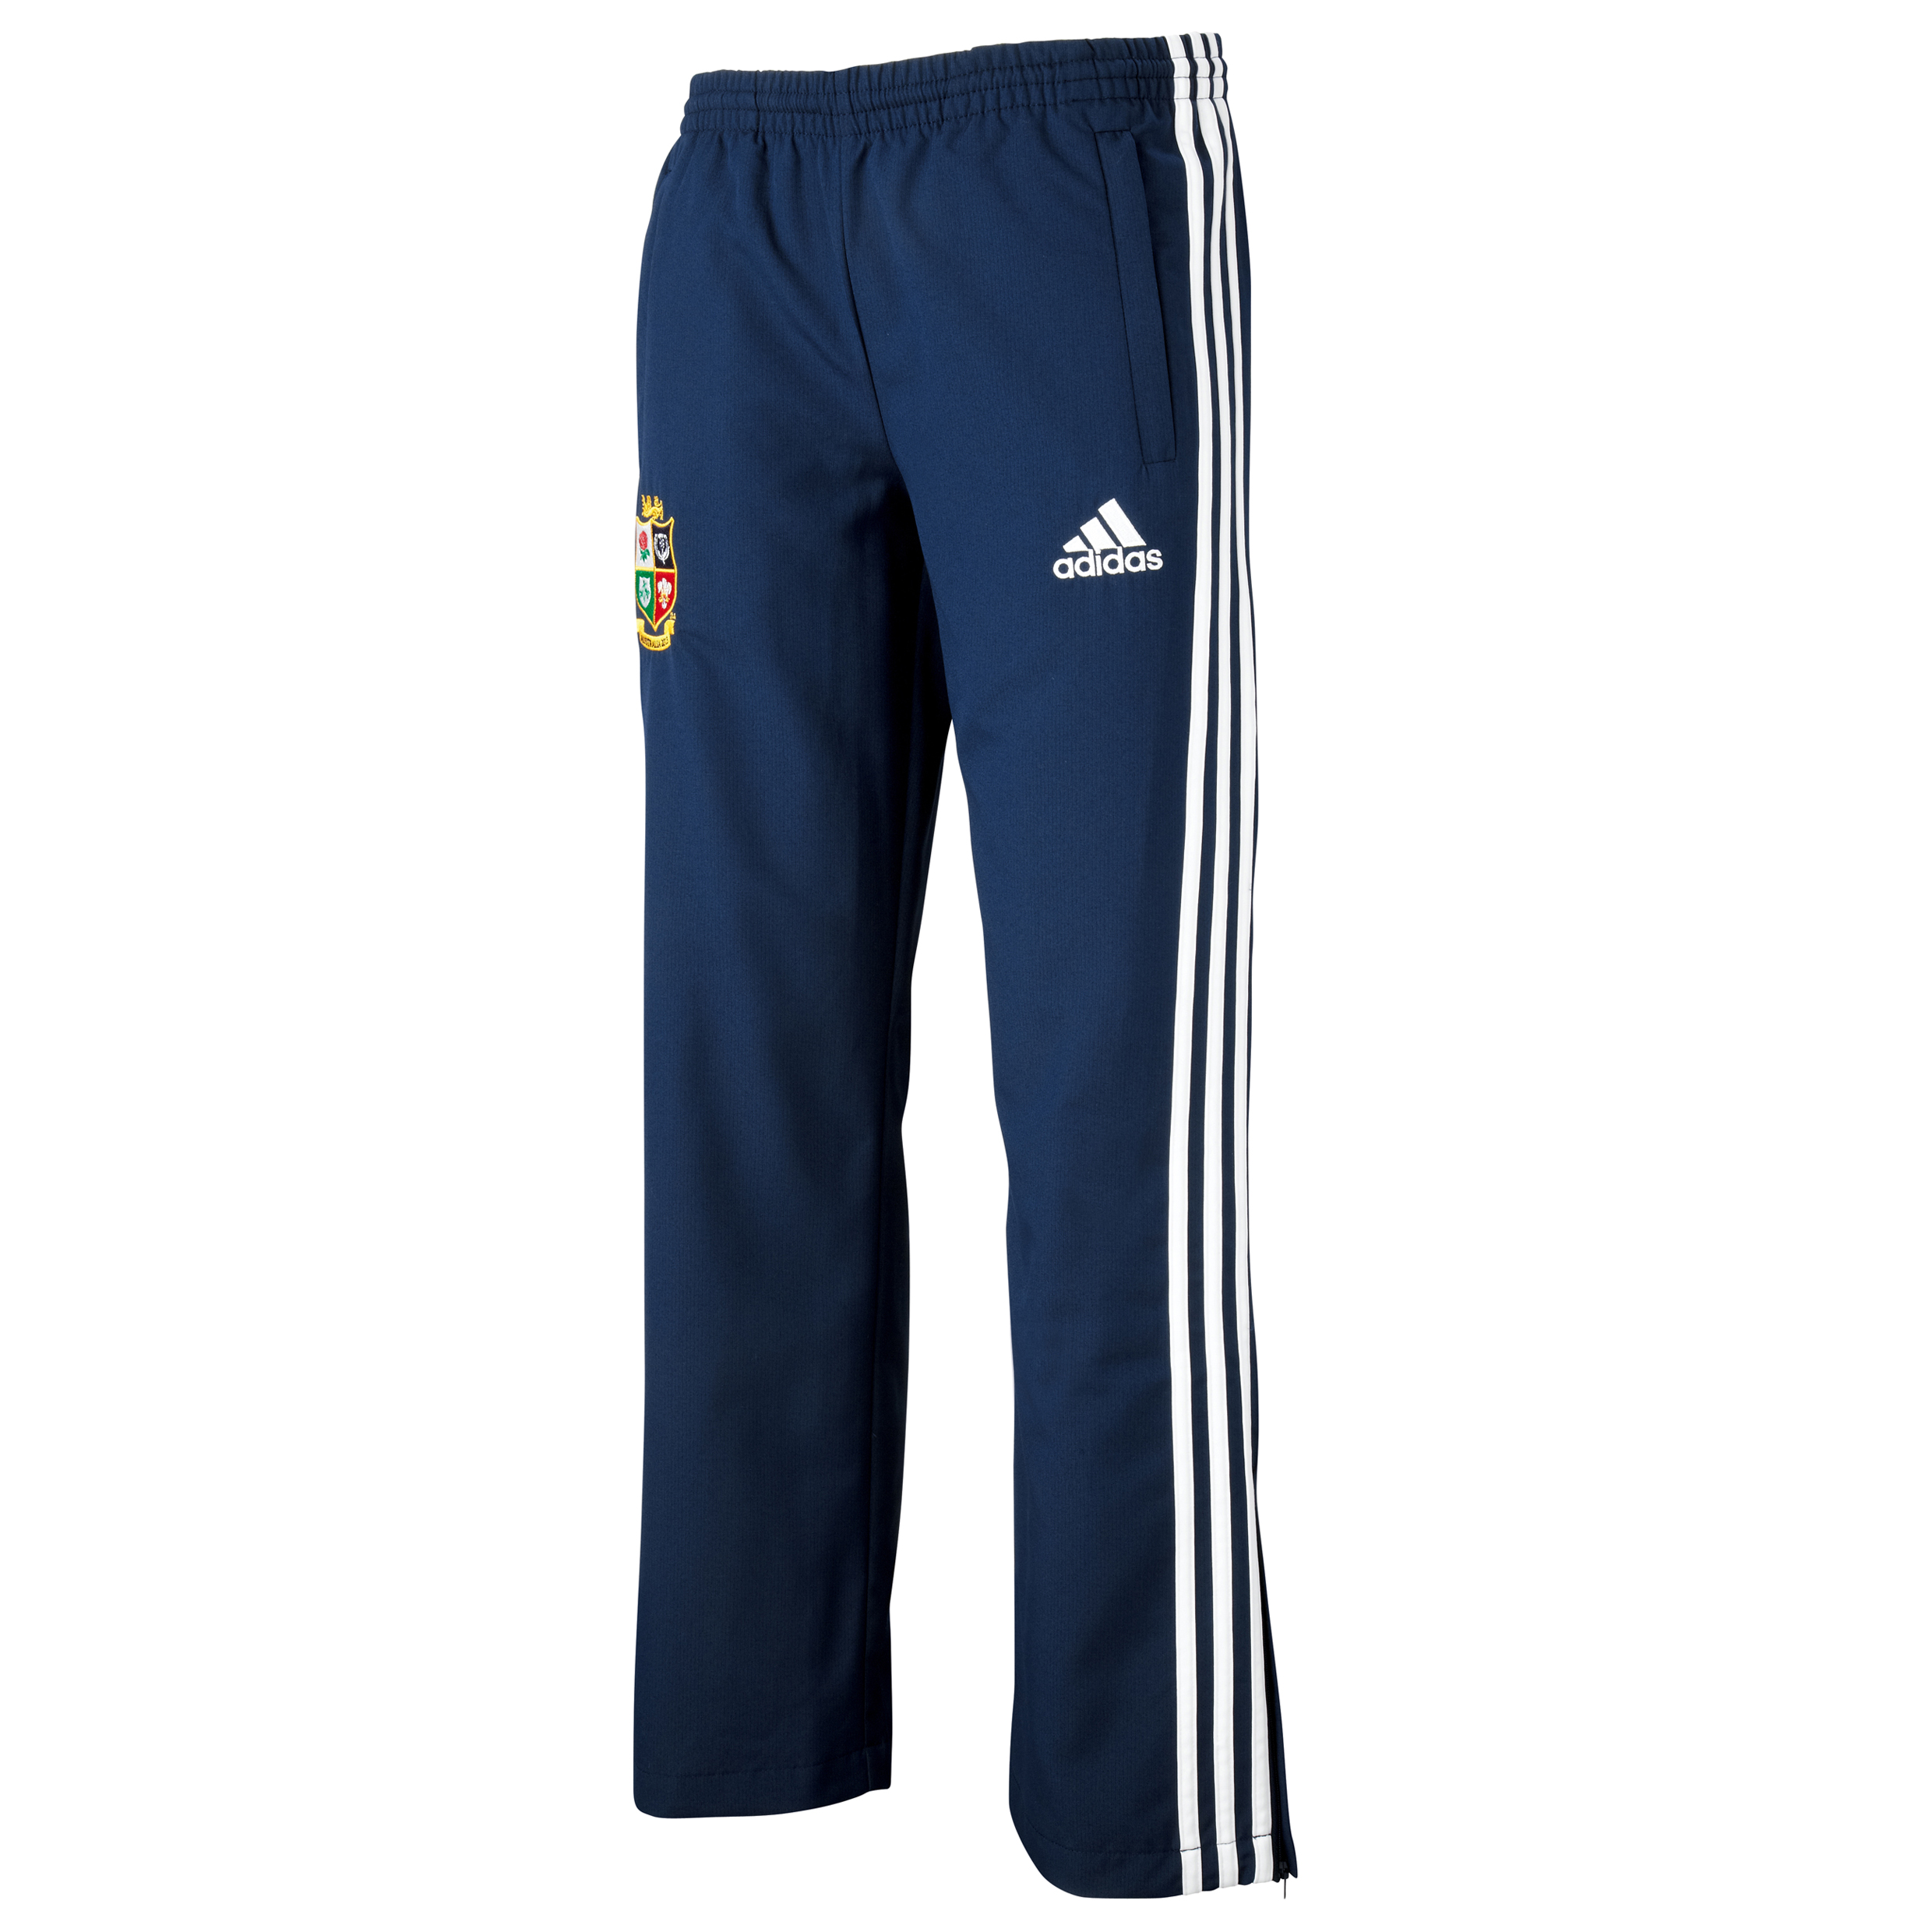 adidas British and Irish Lions Presentation Pants - Collegiate Navy/White - Kids